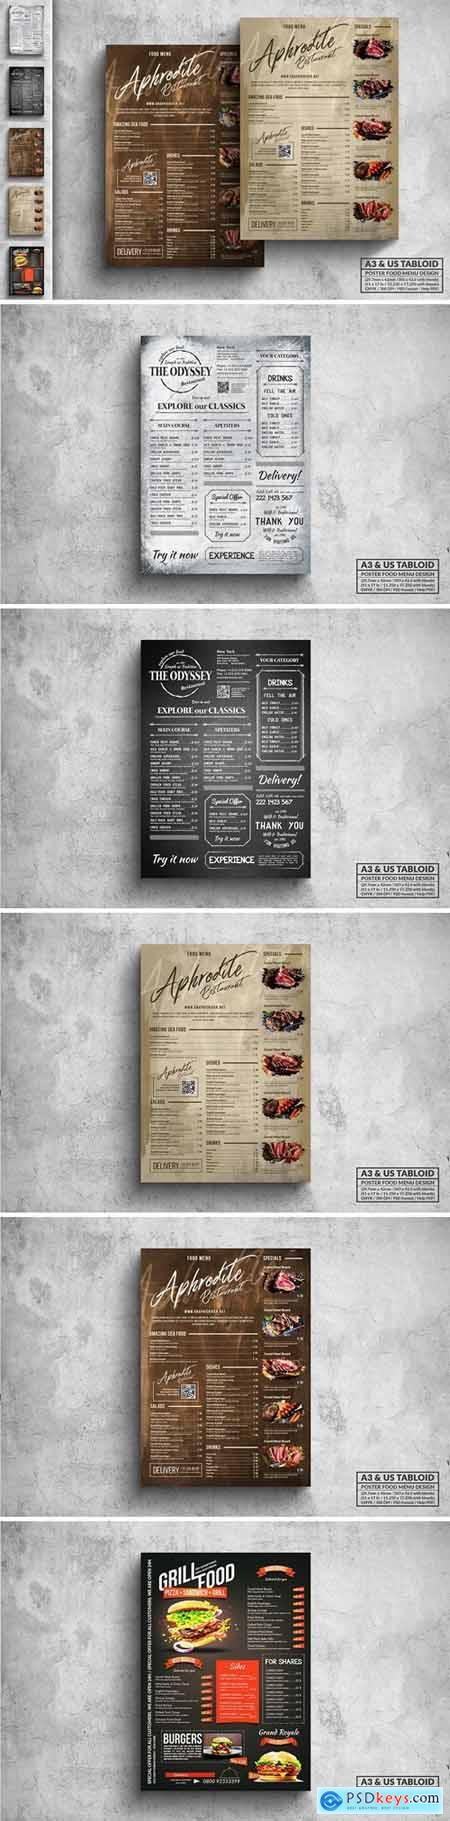 Vintage Food Menu Poster Design Bundle